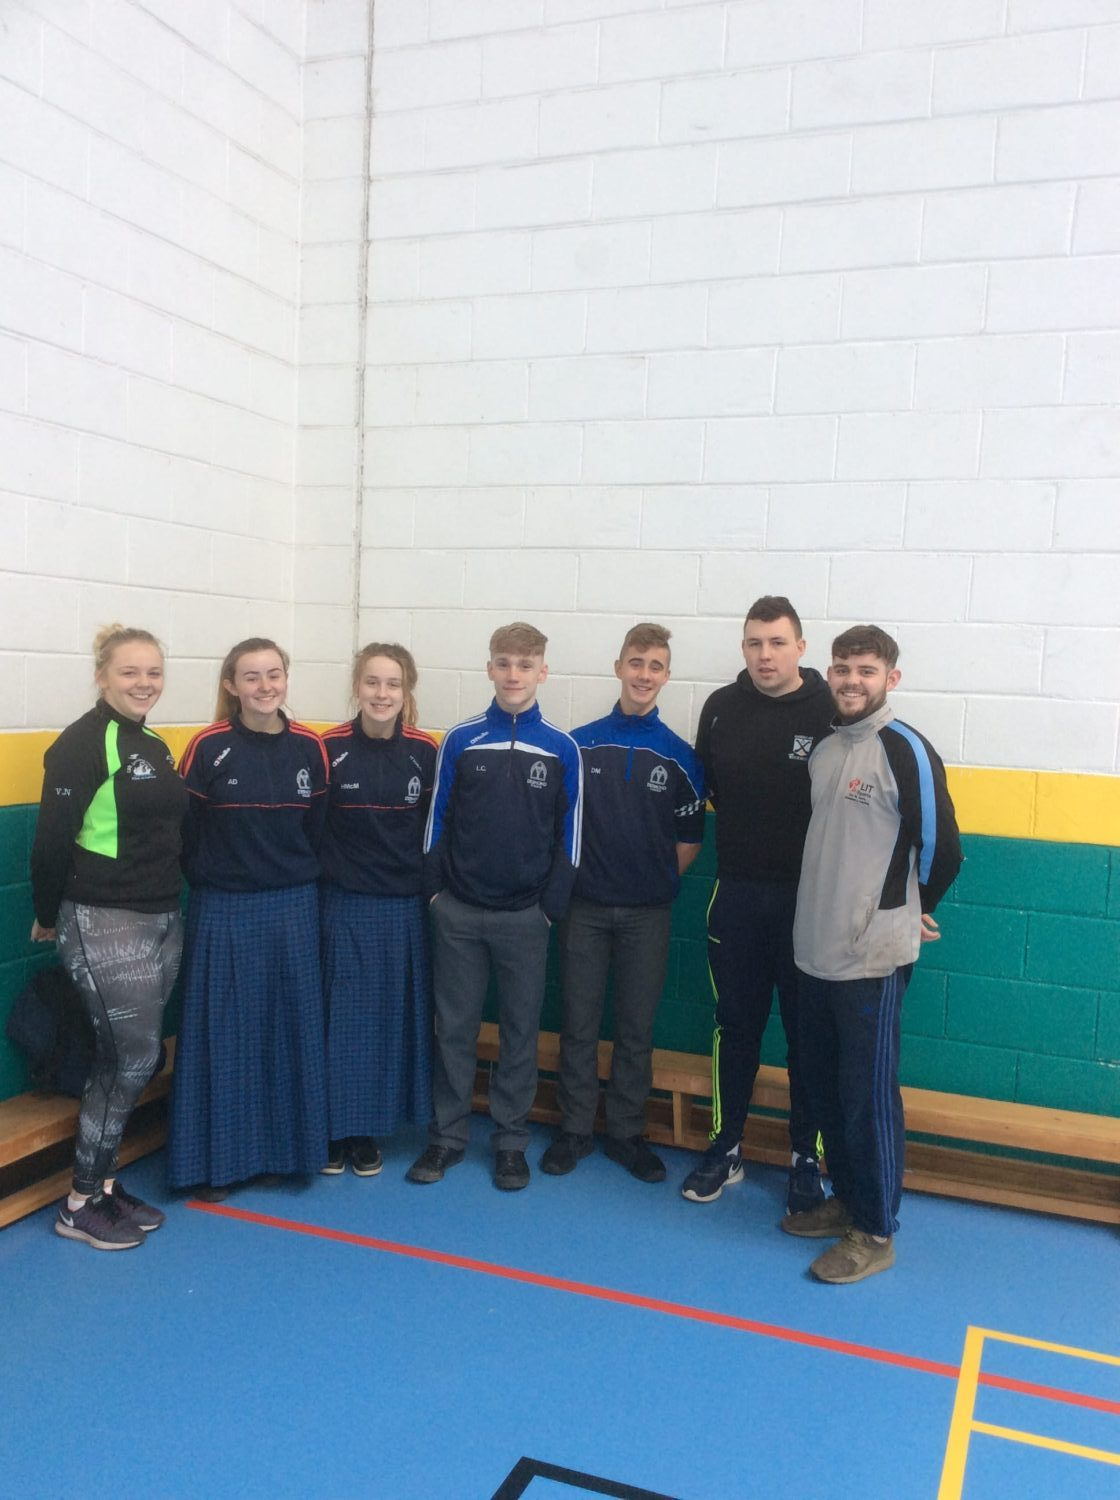 27th March 2017: Desmond College students were participating in Munster Fittest Family in LIT